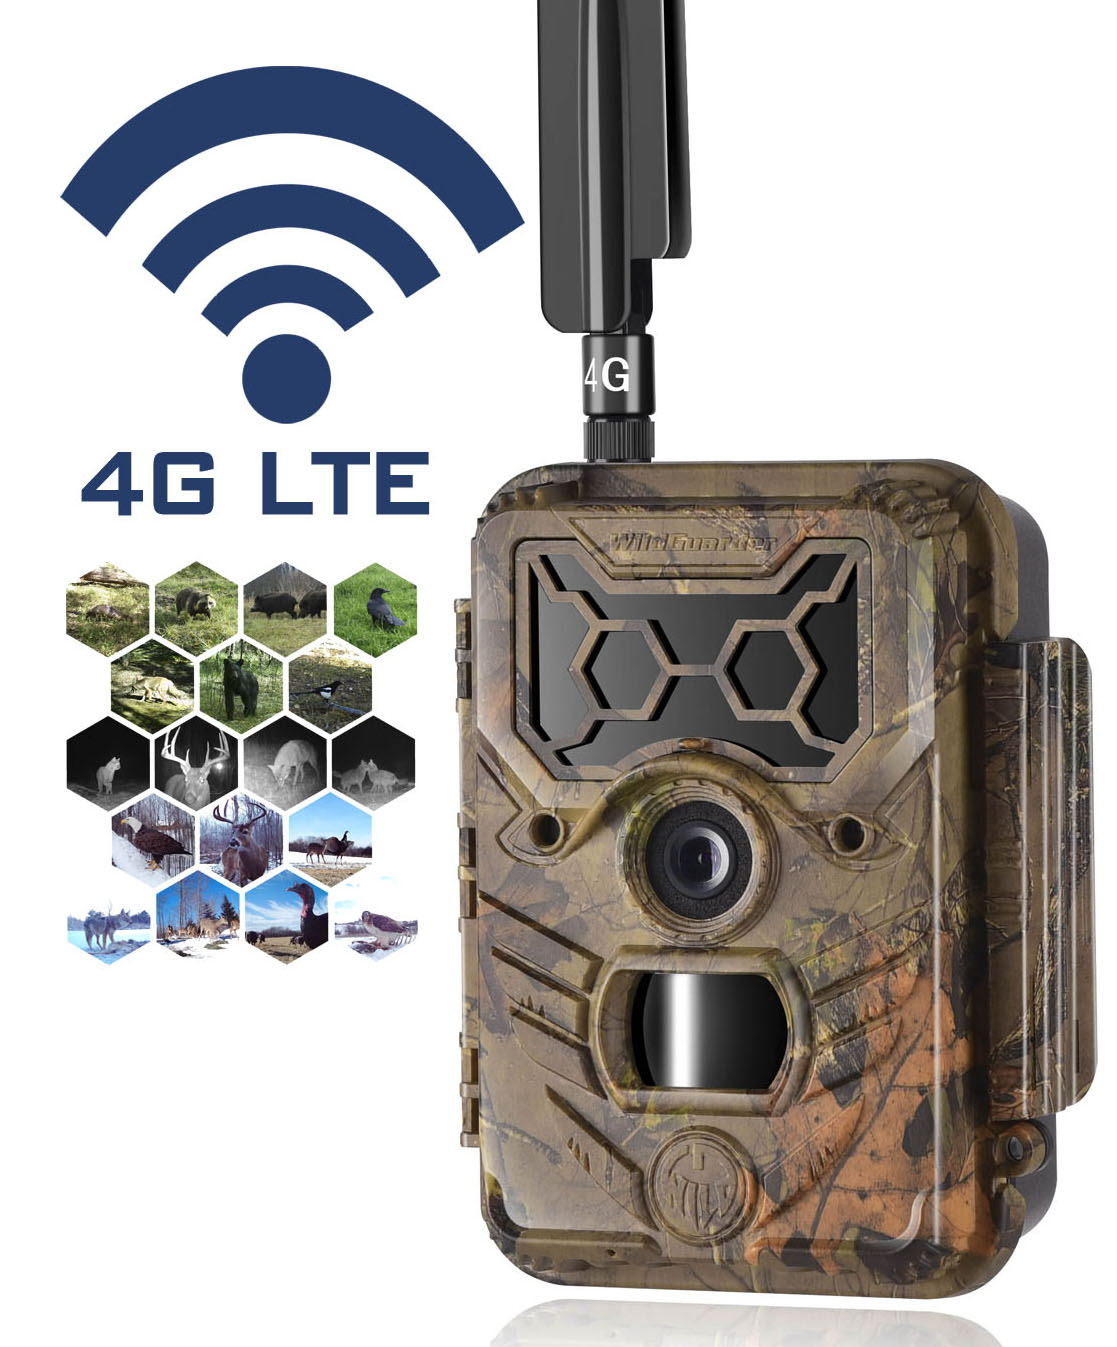 4G Trail Camera Buying Guide 2021 - WildGuarder 4G Game Camera 1